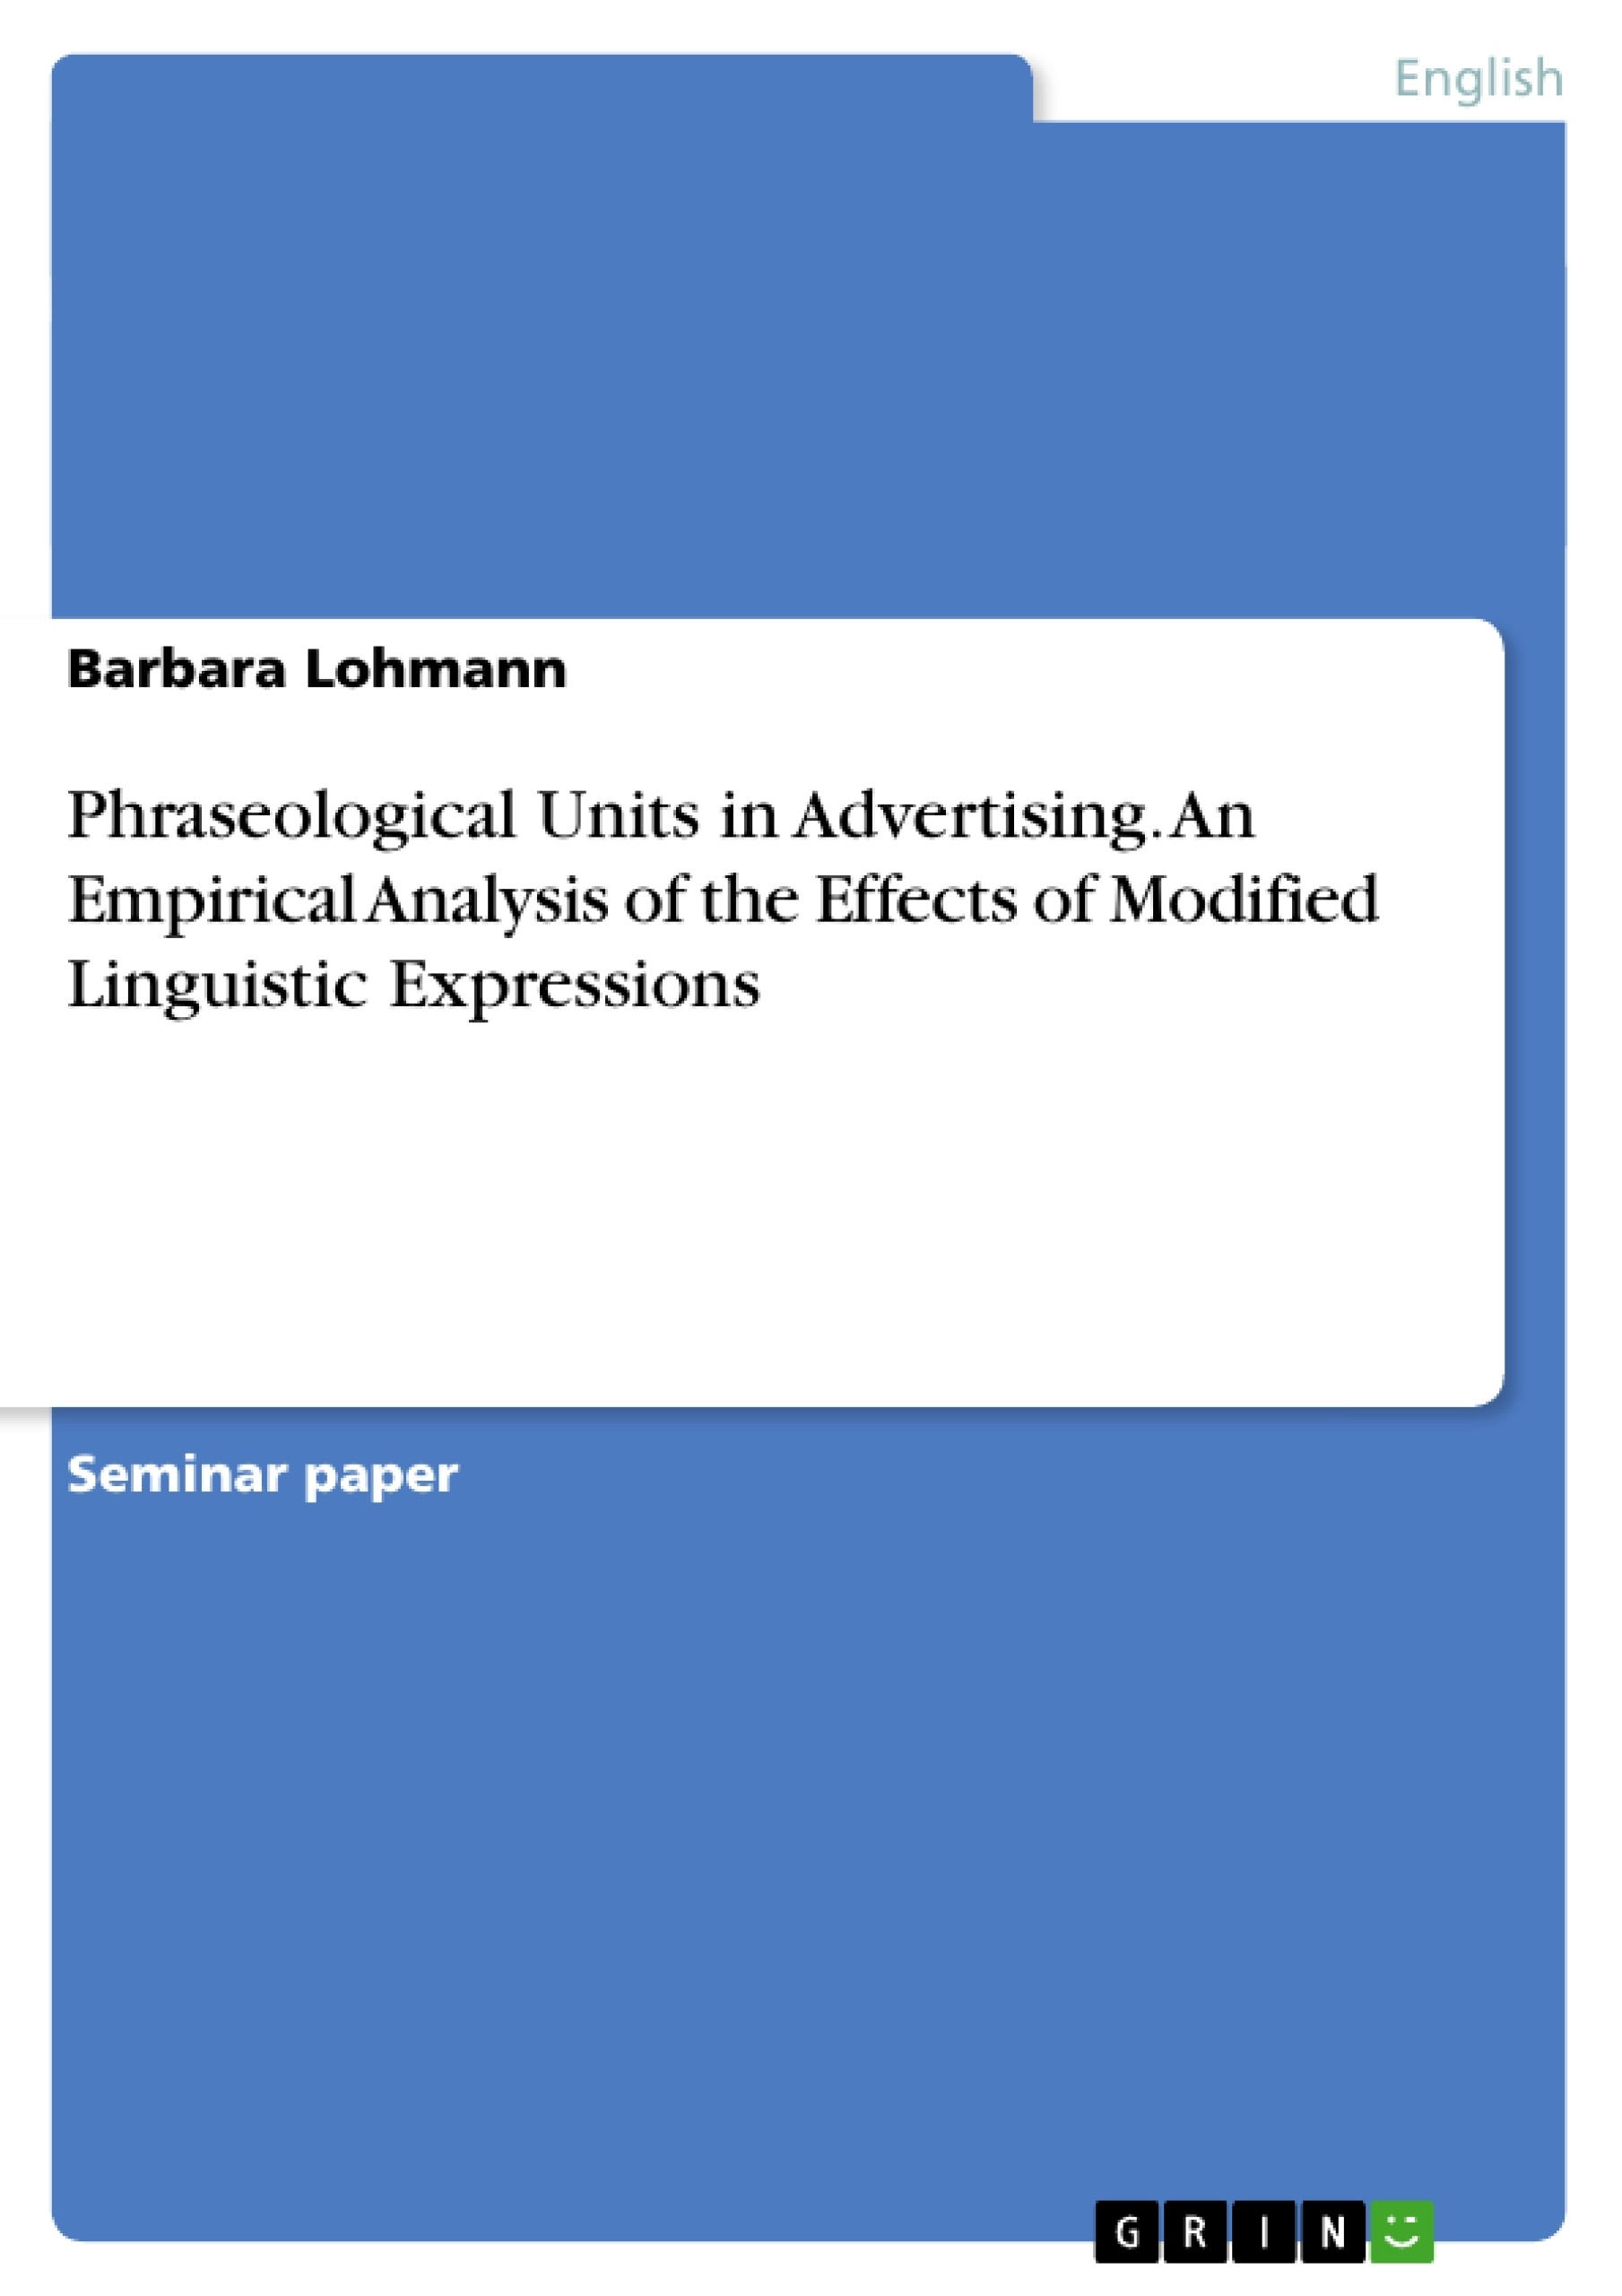 Title: Phraseological Units in Advertising. An Empirical Analysis of the Effects of Modified Linguistic Expressions